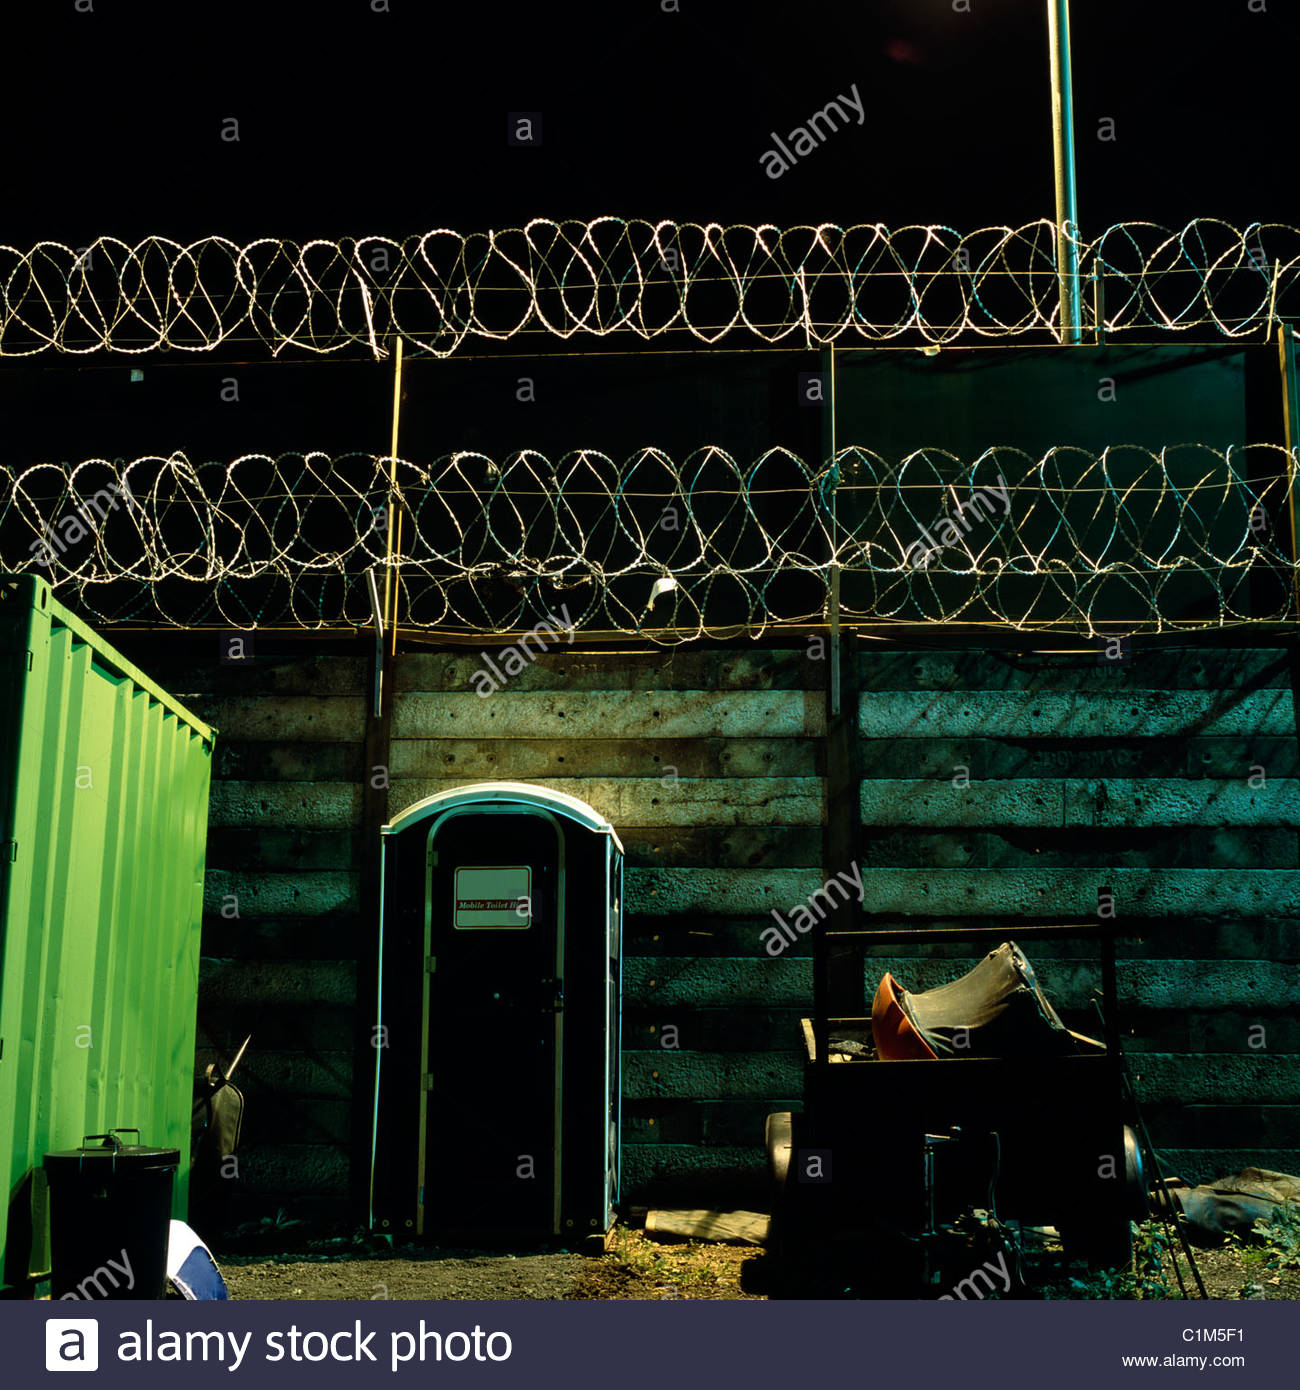 Security fencing and portaloo at yard in the night, Gloucestershire, UK. - Stock Image